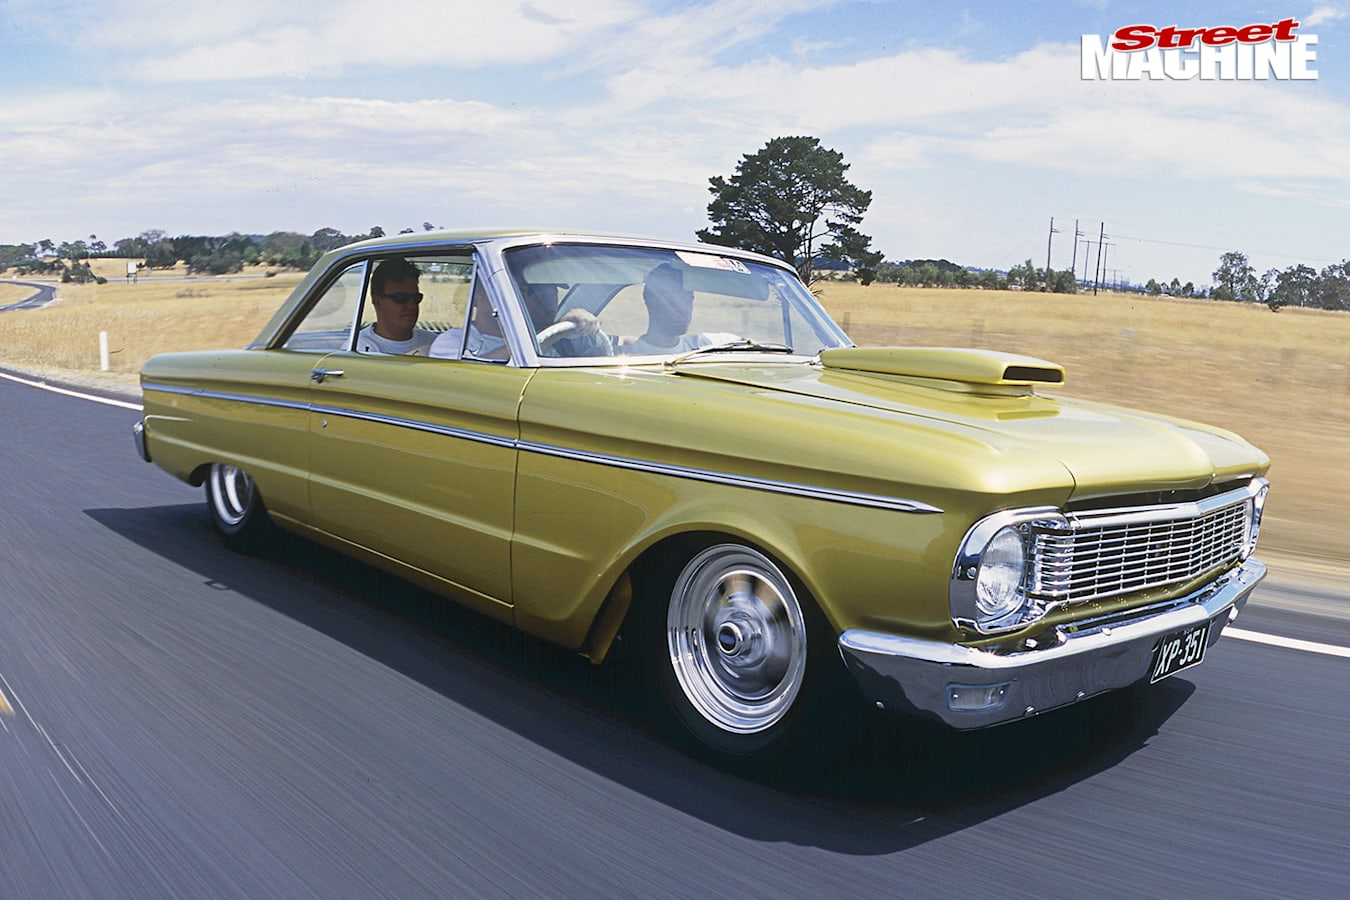 Ford Falcon XP onroad